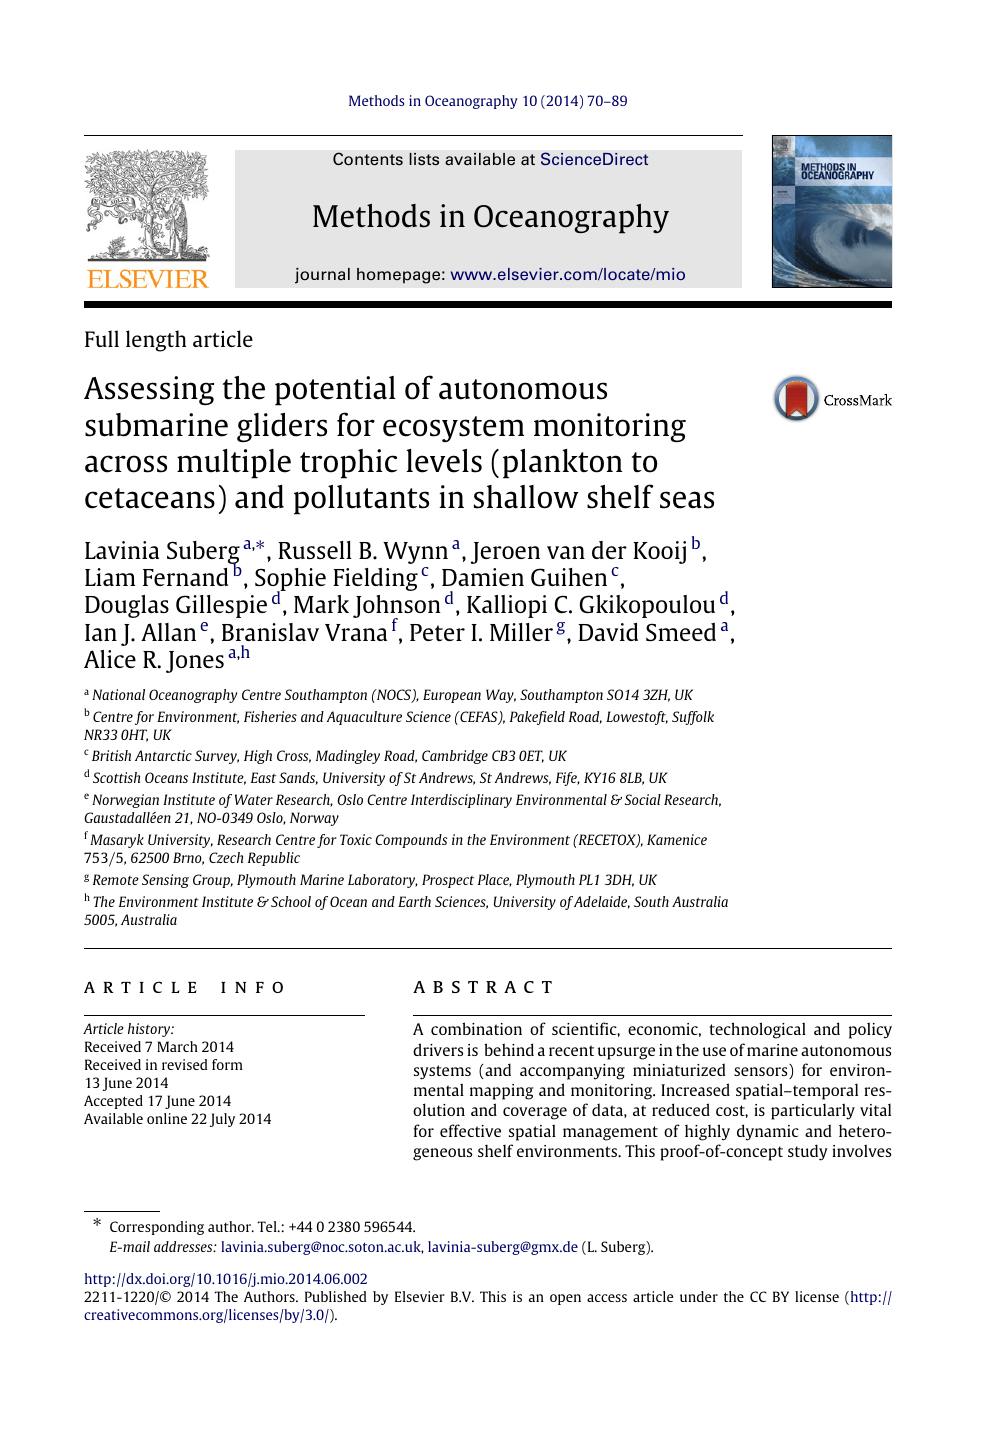 Assessing the potential of autonomous submarine gliders for